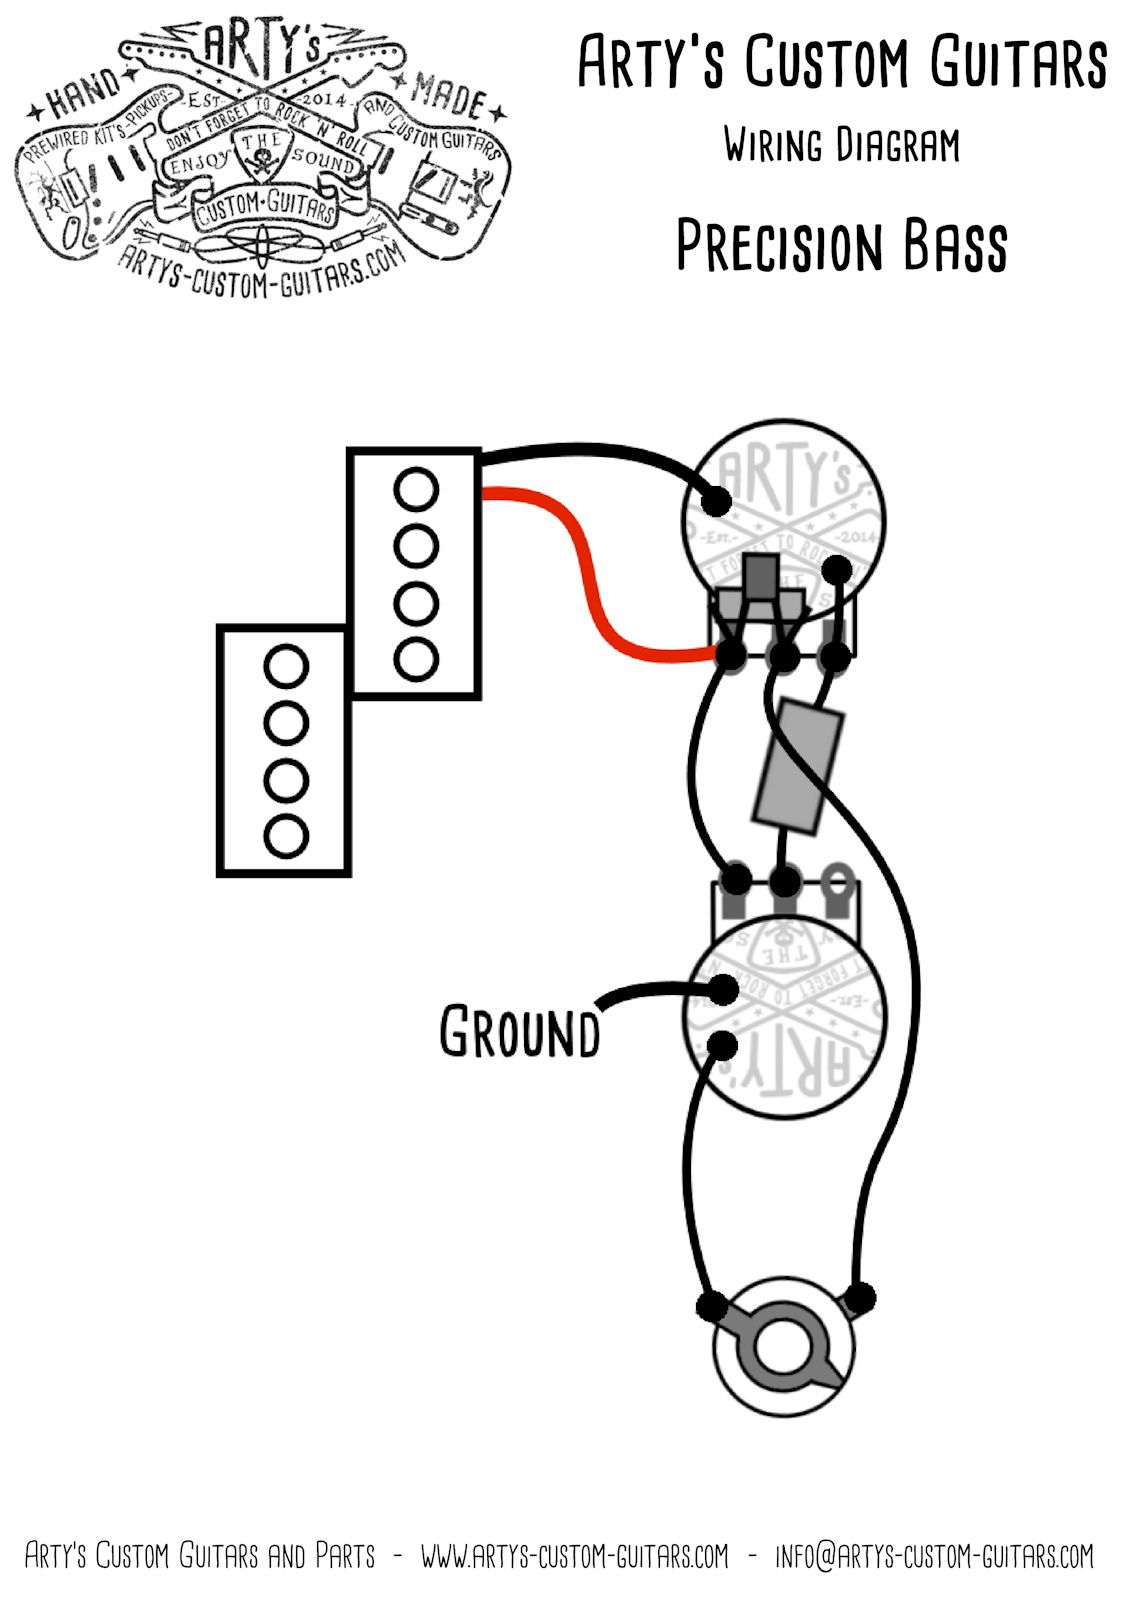 Artys Custom Guitars Vintage Wiring Prewired Kit Diagram Switch In Addition Les Paul Harness Assembly Precision Bass P